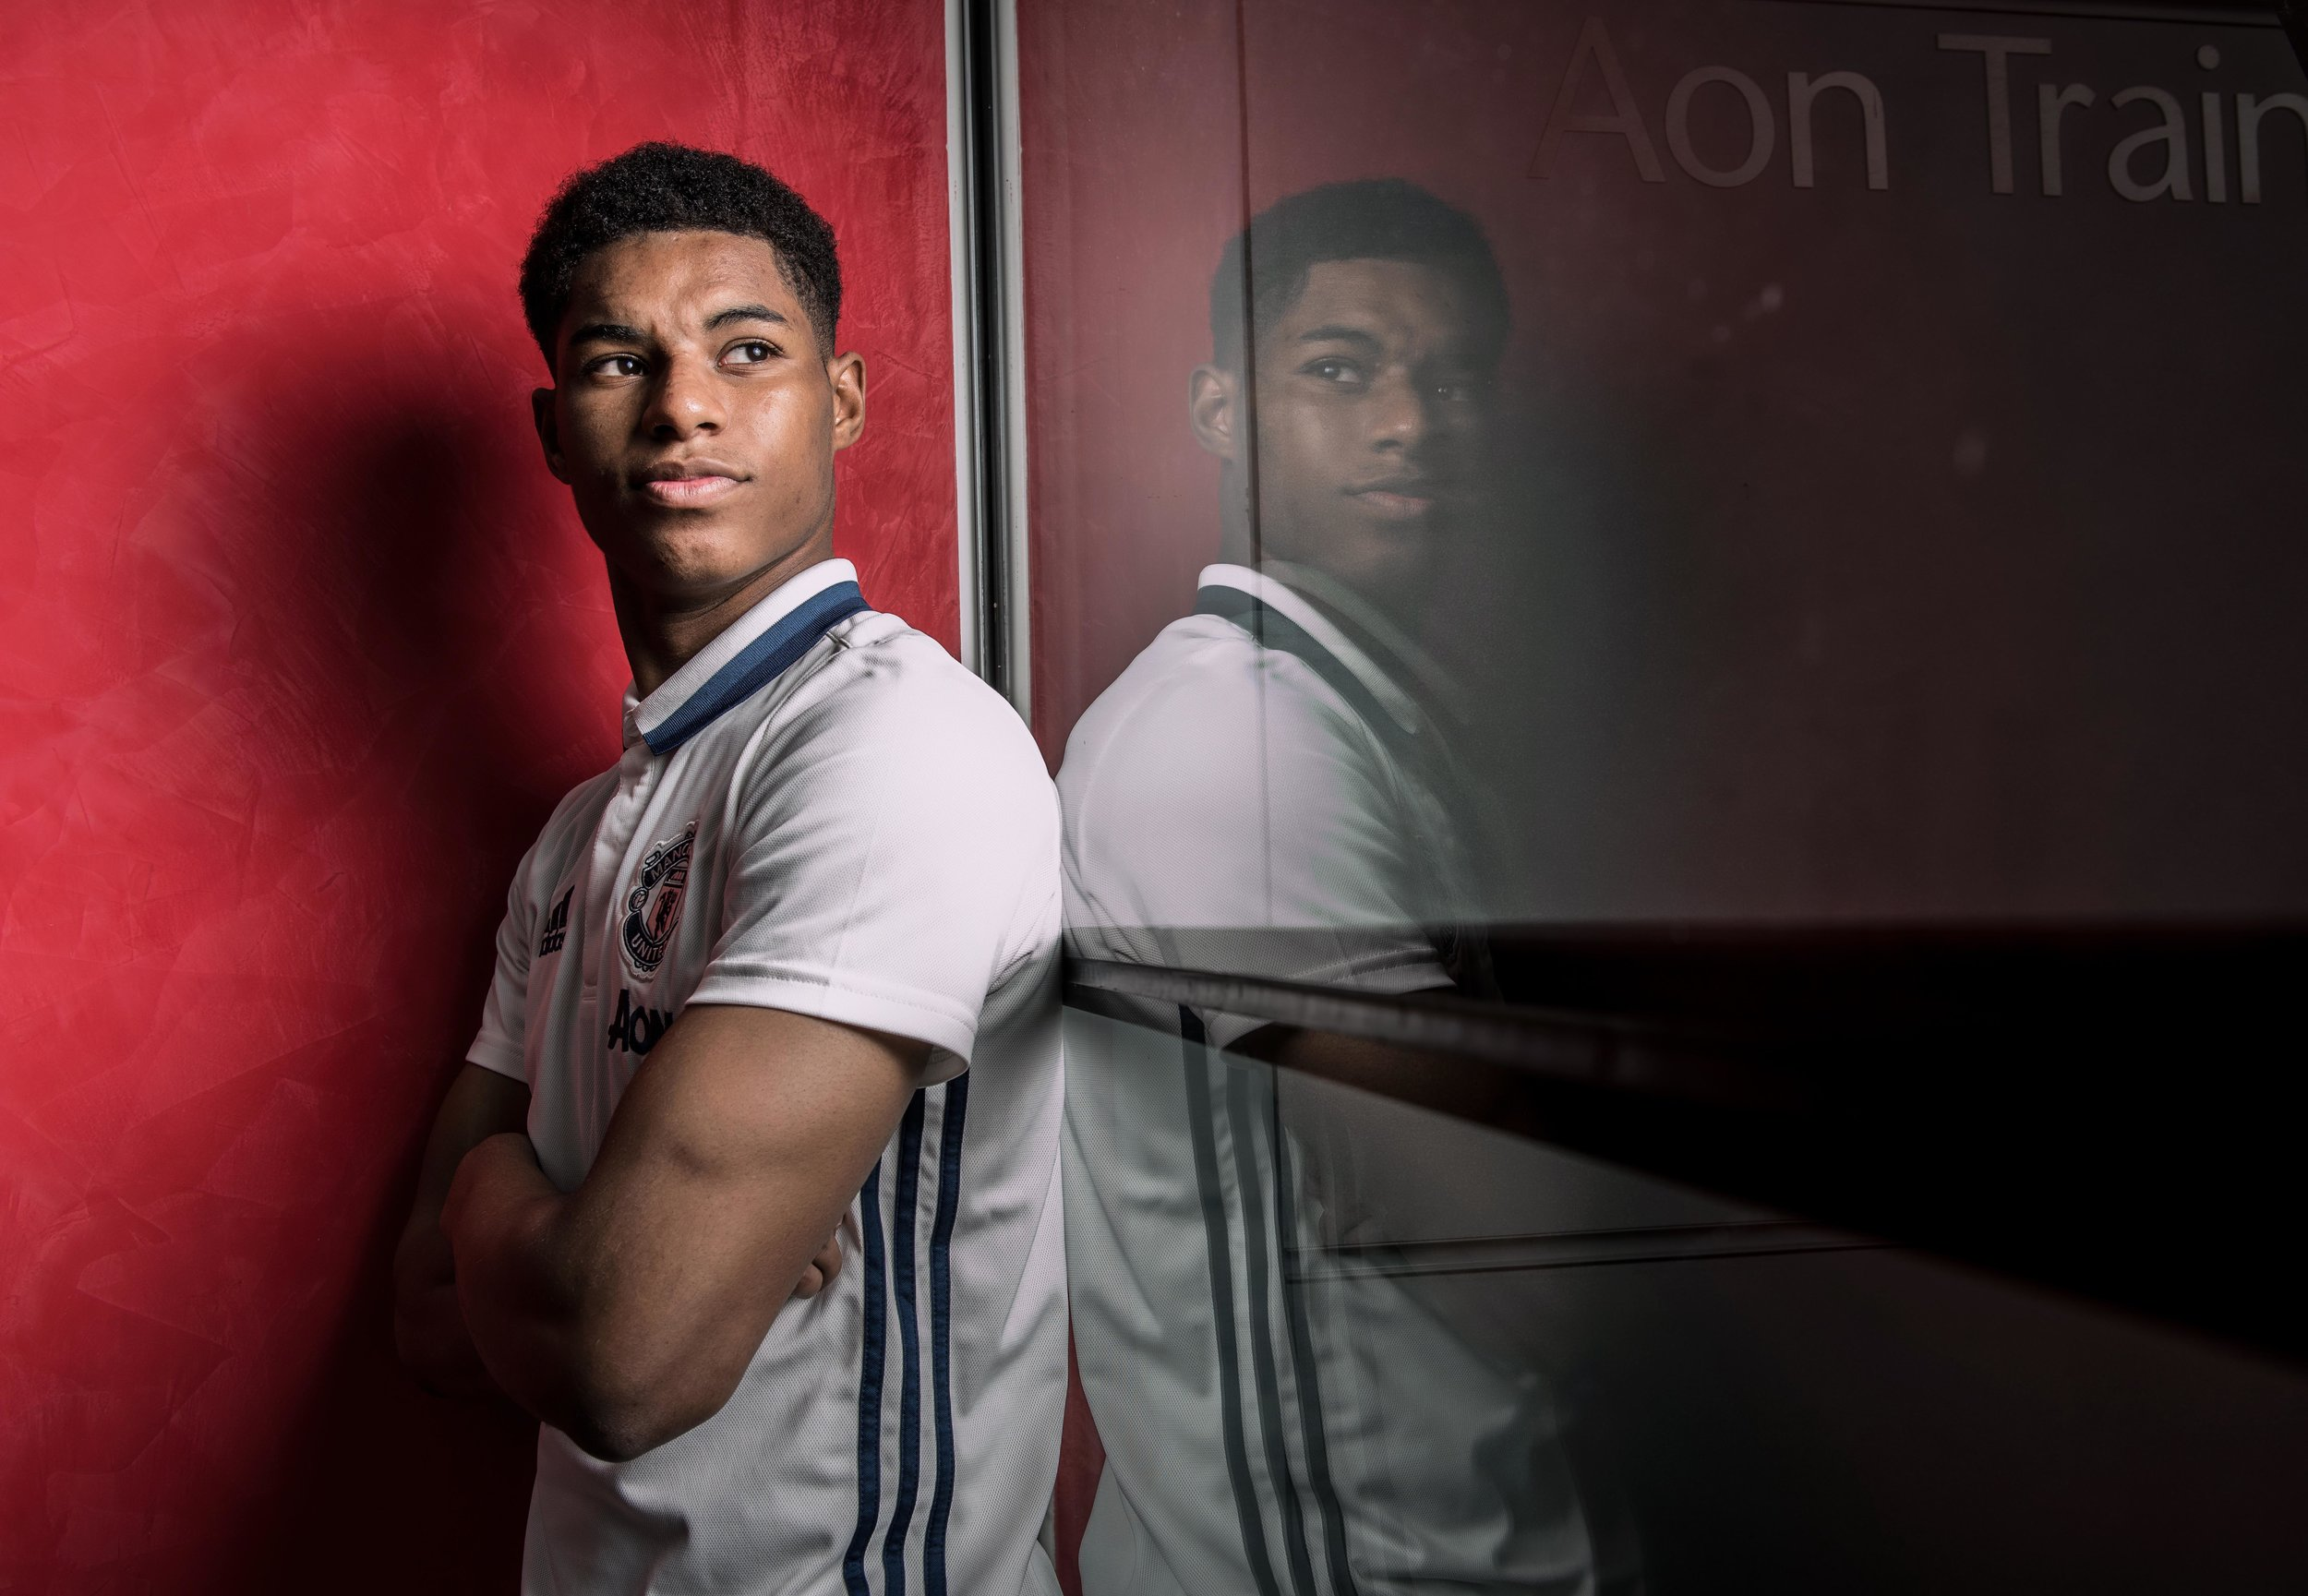 MARCUS RASHFORD OF MANCHESTER UNITED PHOTOGRAPHED AT AON TRAINING GROUND 25TH APRIL 2017 PHOTO CREDIT PAUL COOPER